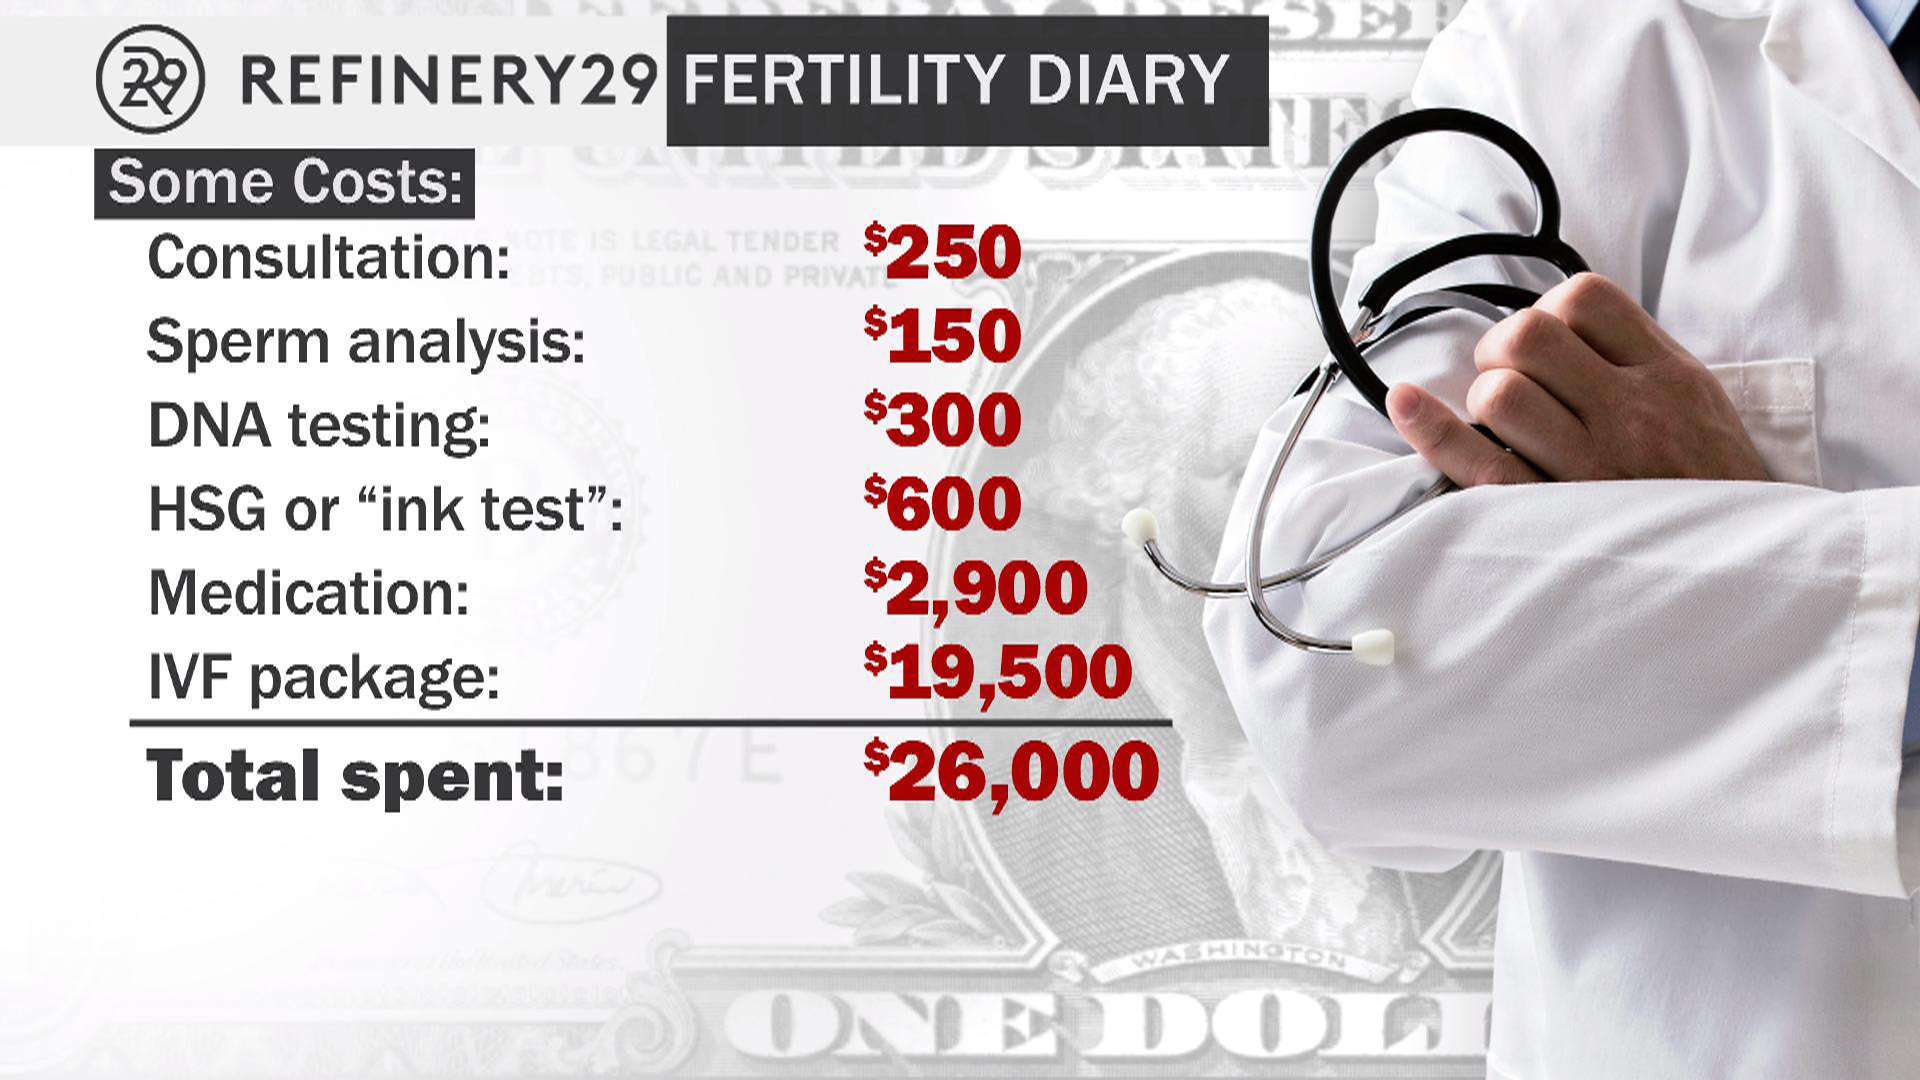 The staggering cost of fertility treatments